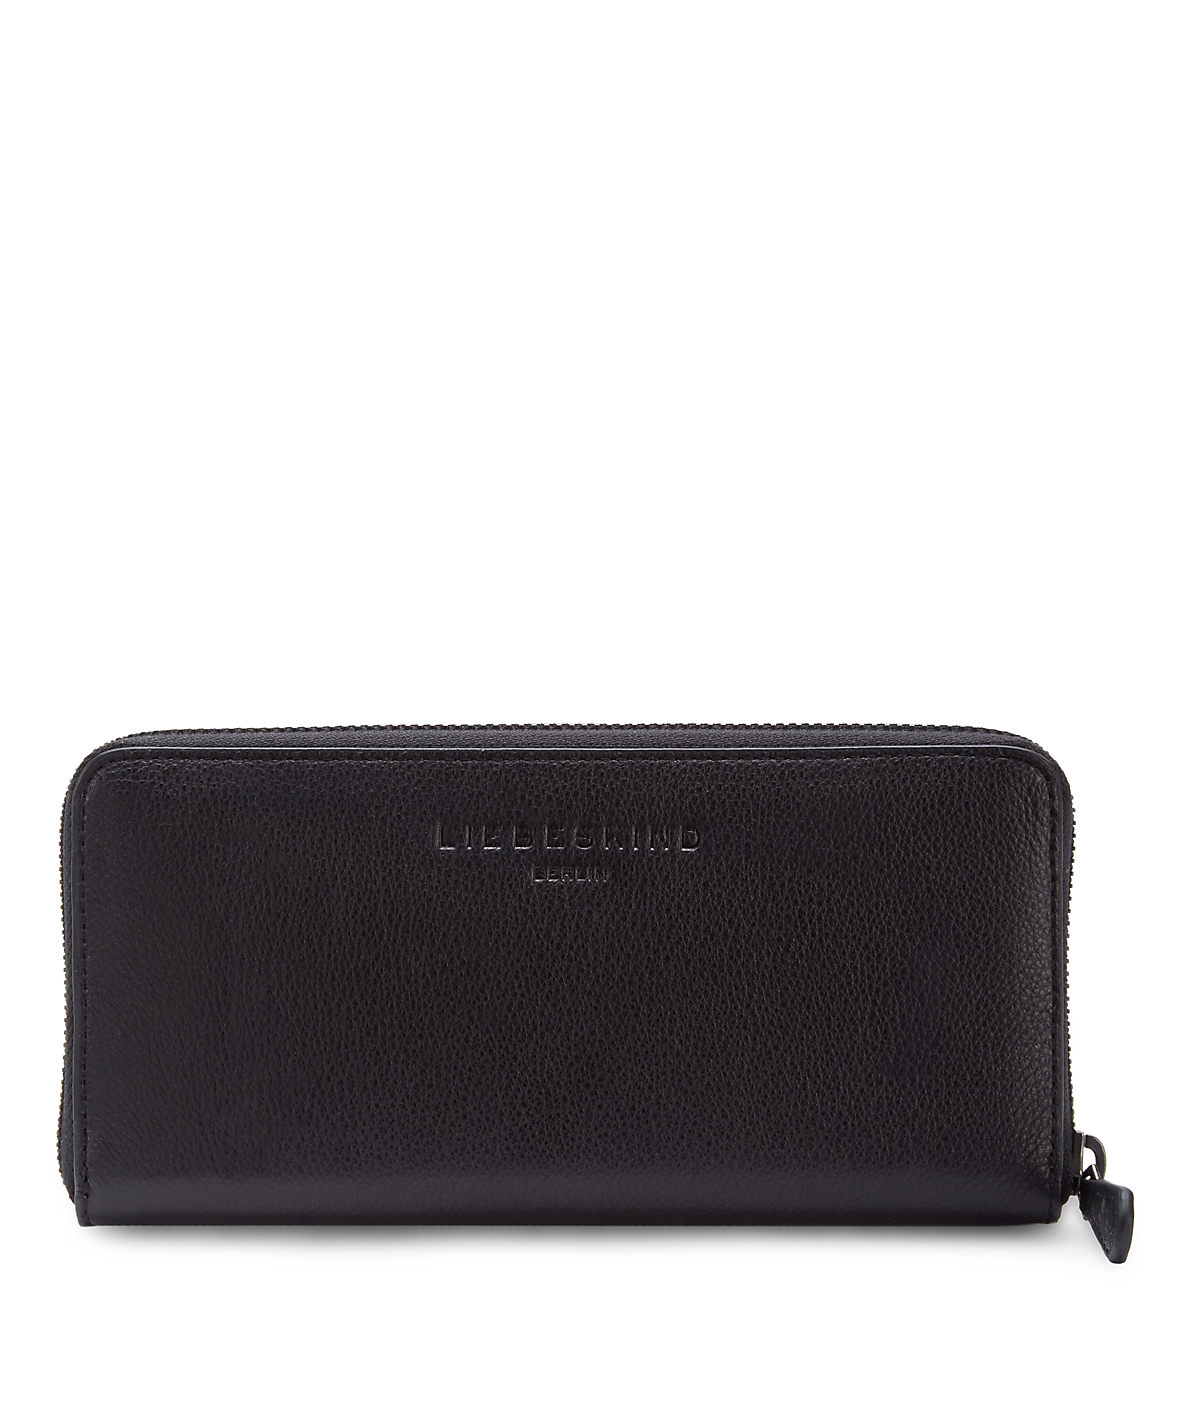 wallet Gianna from liebeskind